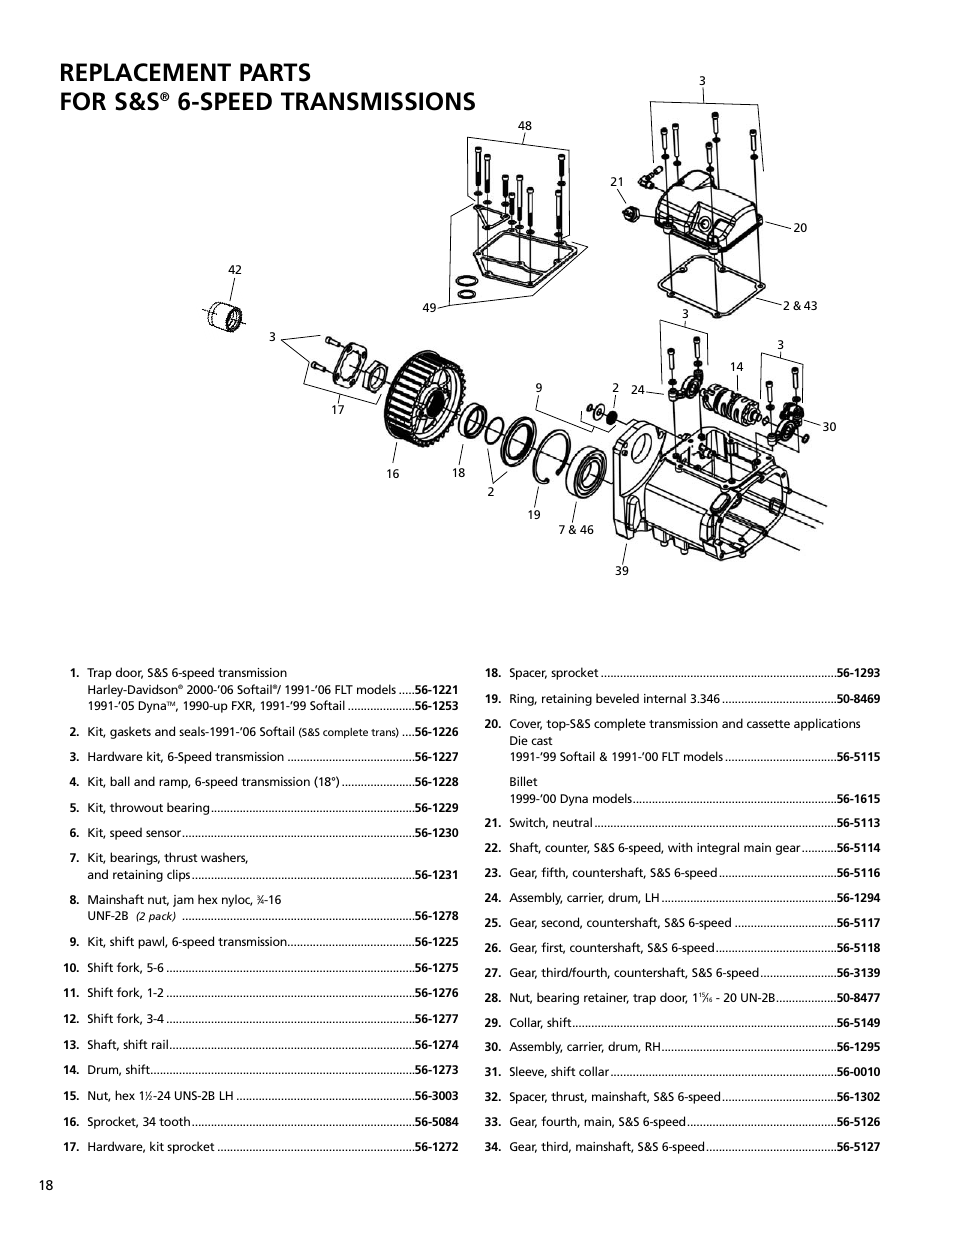 Harley 5 Speed Transmission Diagram - Free Diagram For Student